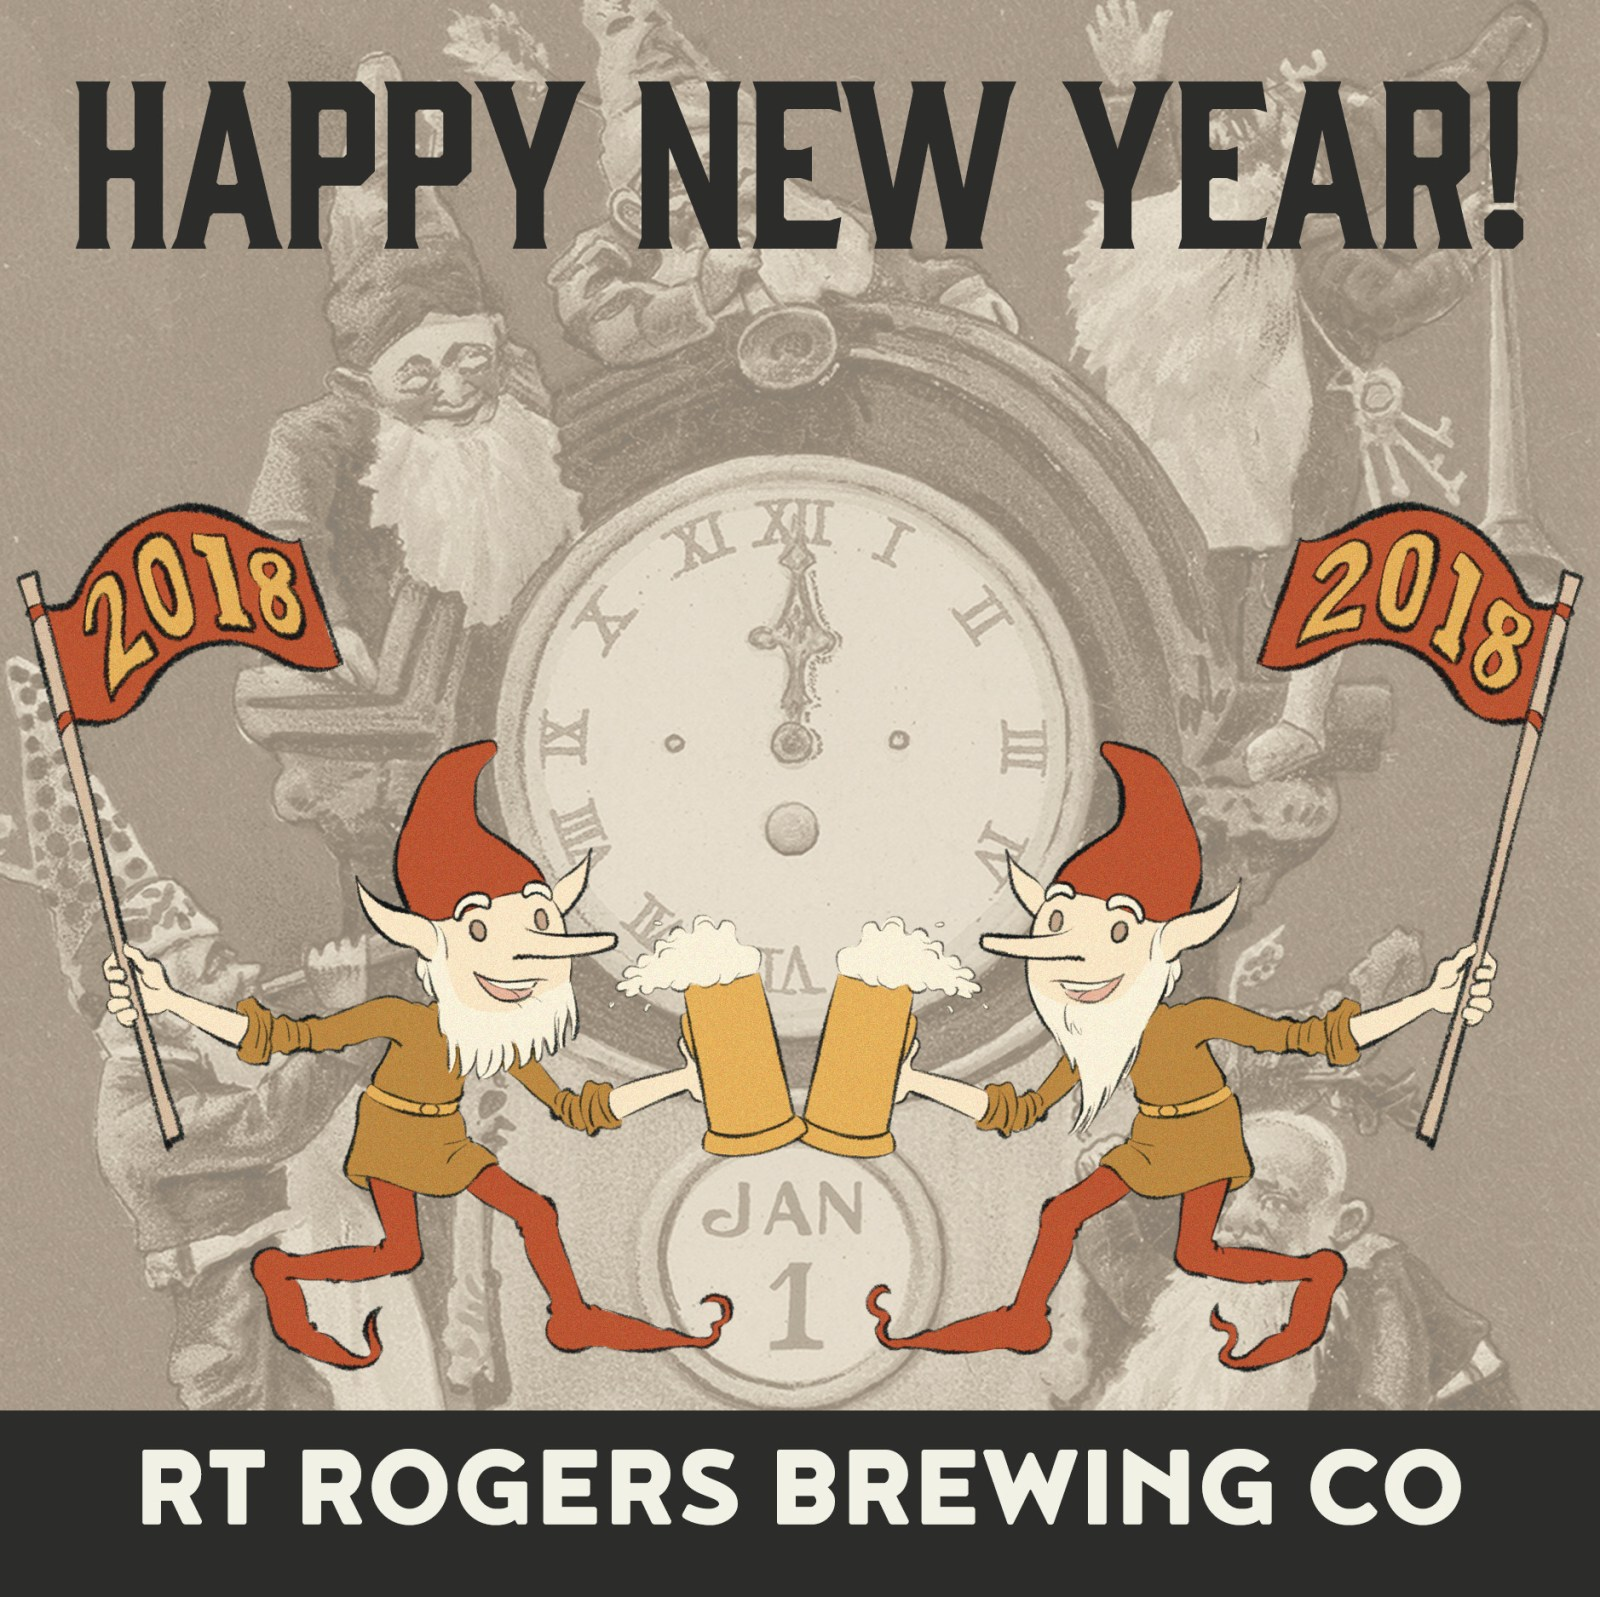 Happy New Year From RT Rogers Brewing Co |